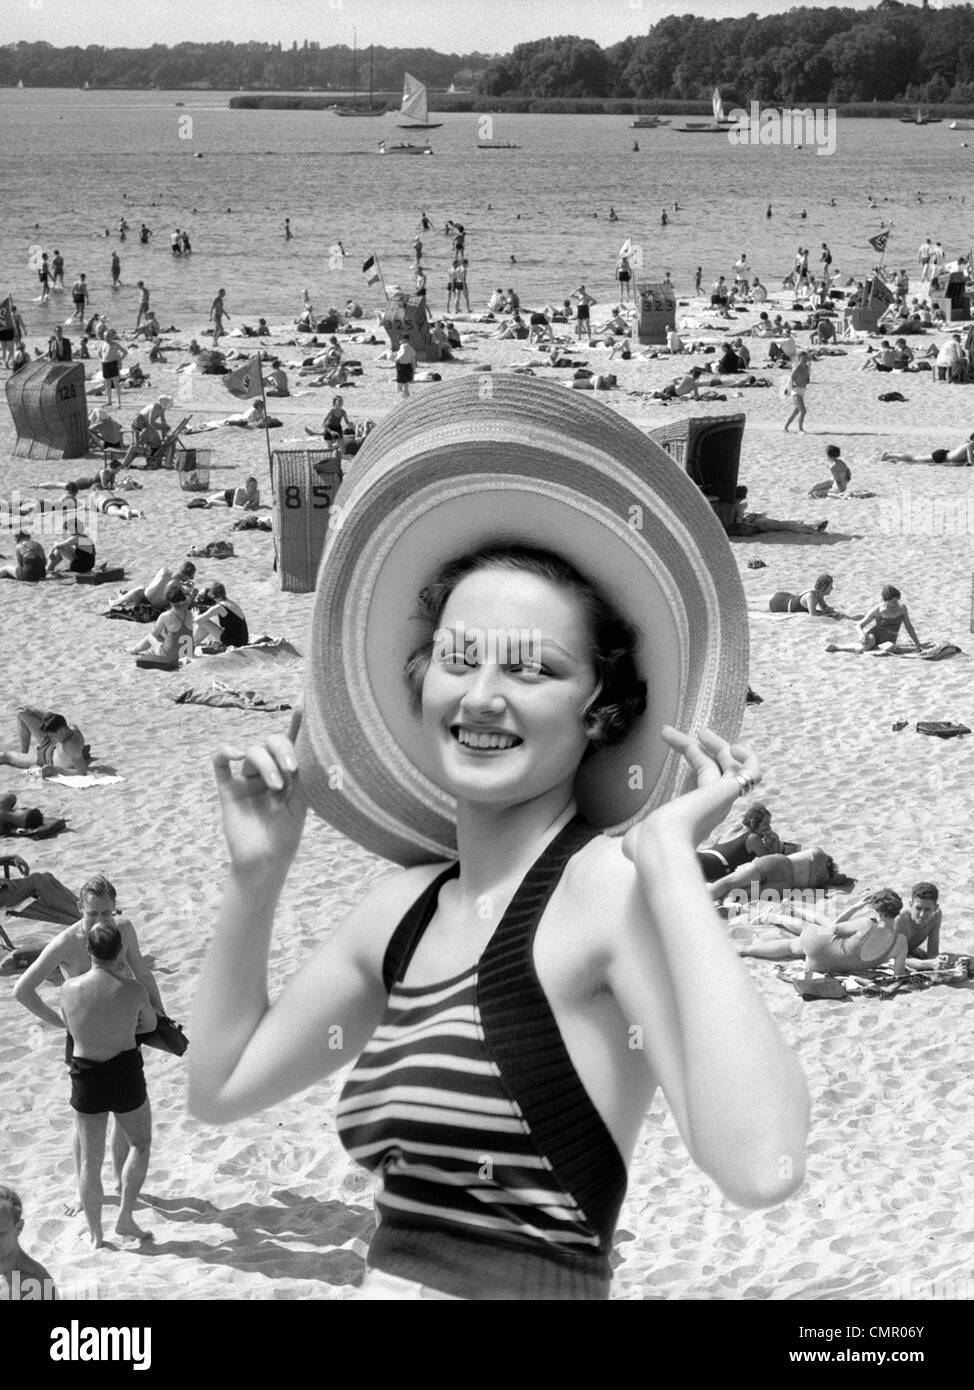 1930s VACATION MONTAGE PORTRAIT SMILING WOMAN IN BATHING SUIT WEARING LARGE STRAW HAT AND SCENE OF CROWDED BEACH - Stock Image